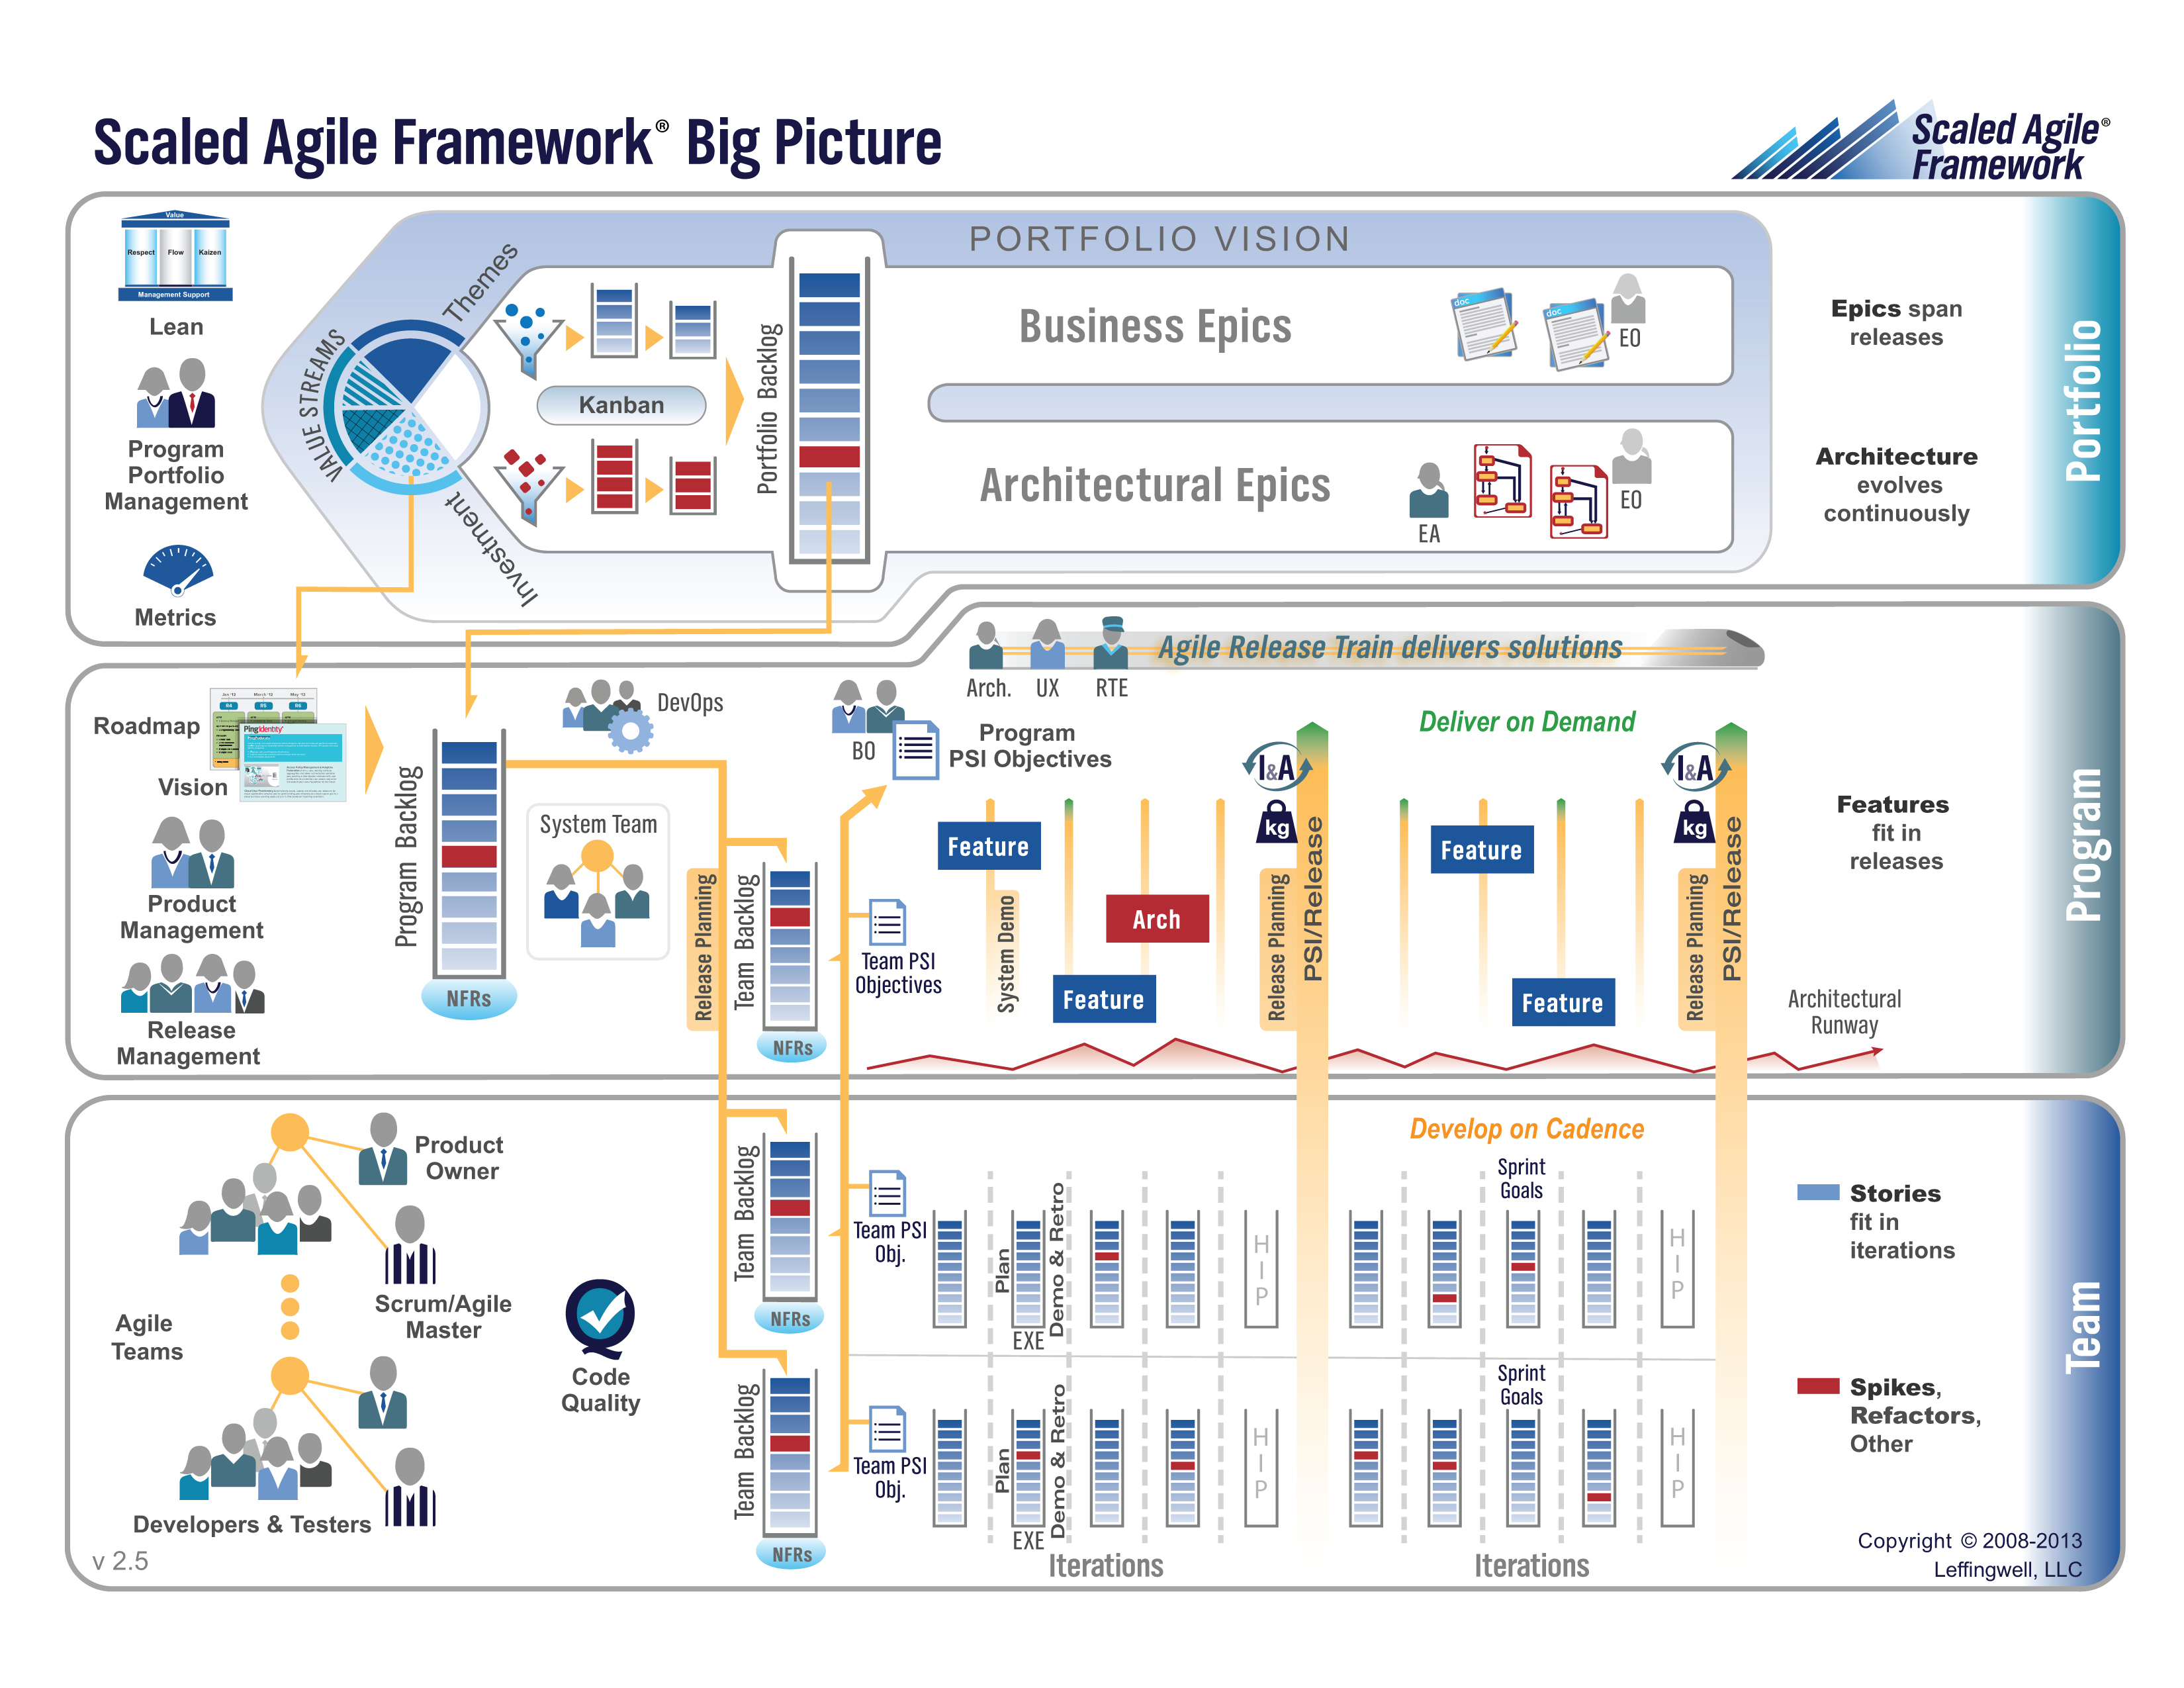 Announcing a New Release of the Scaled Agile Framework ...